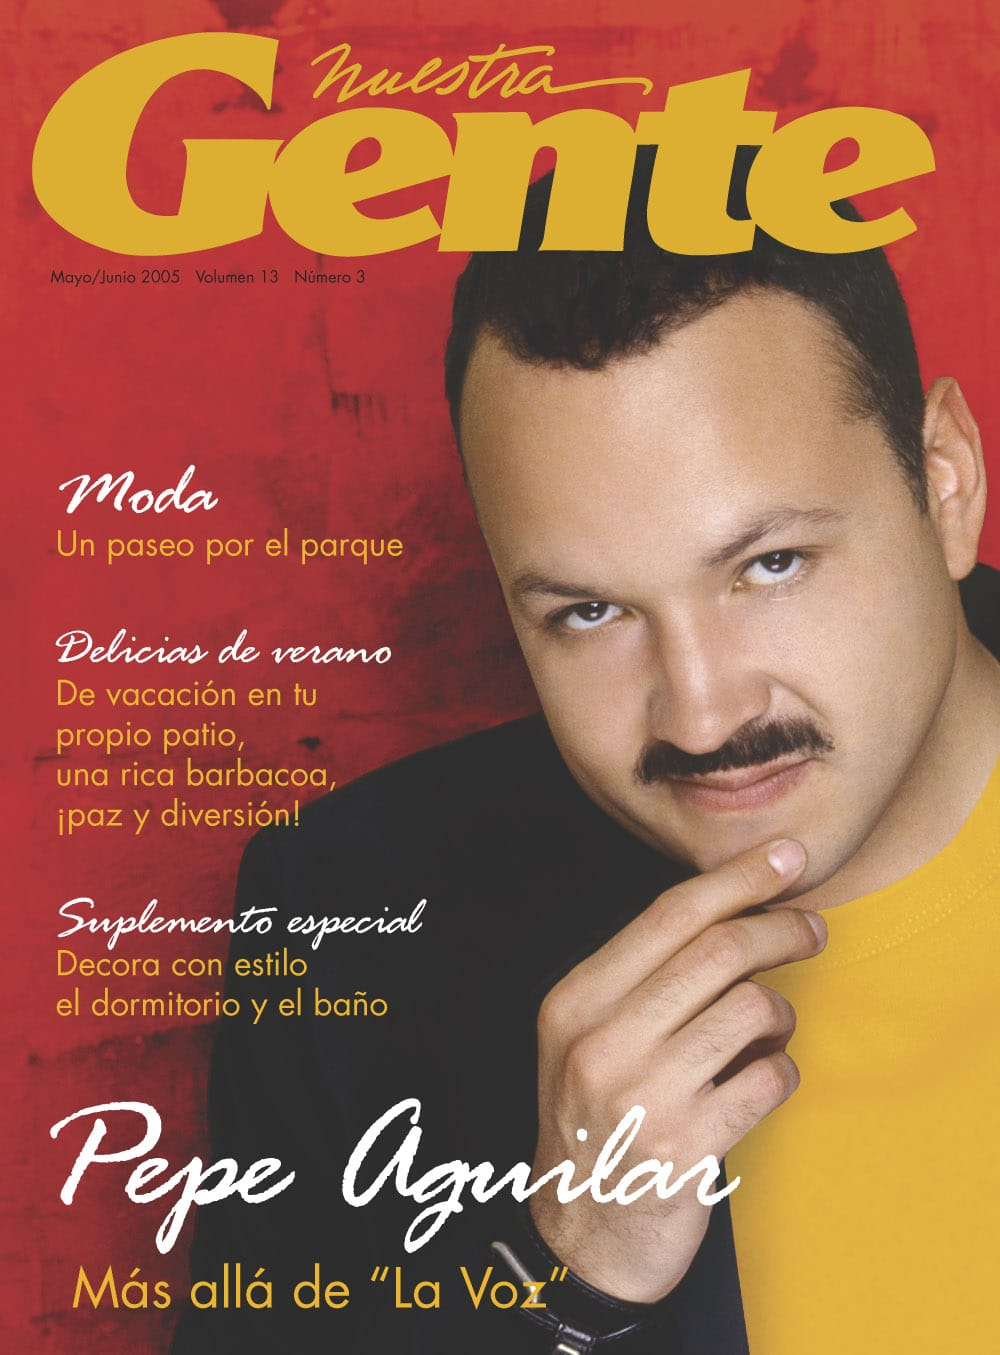 Magazine Design & Production – Nuestra Gente